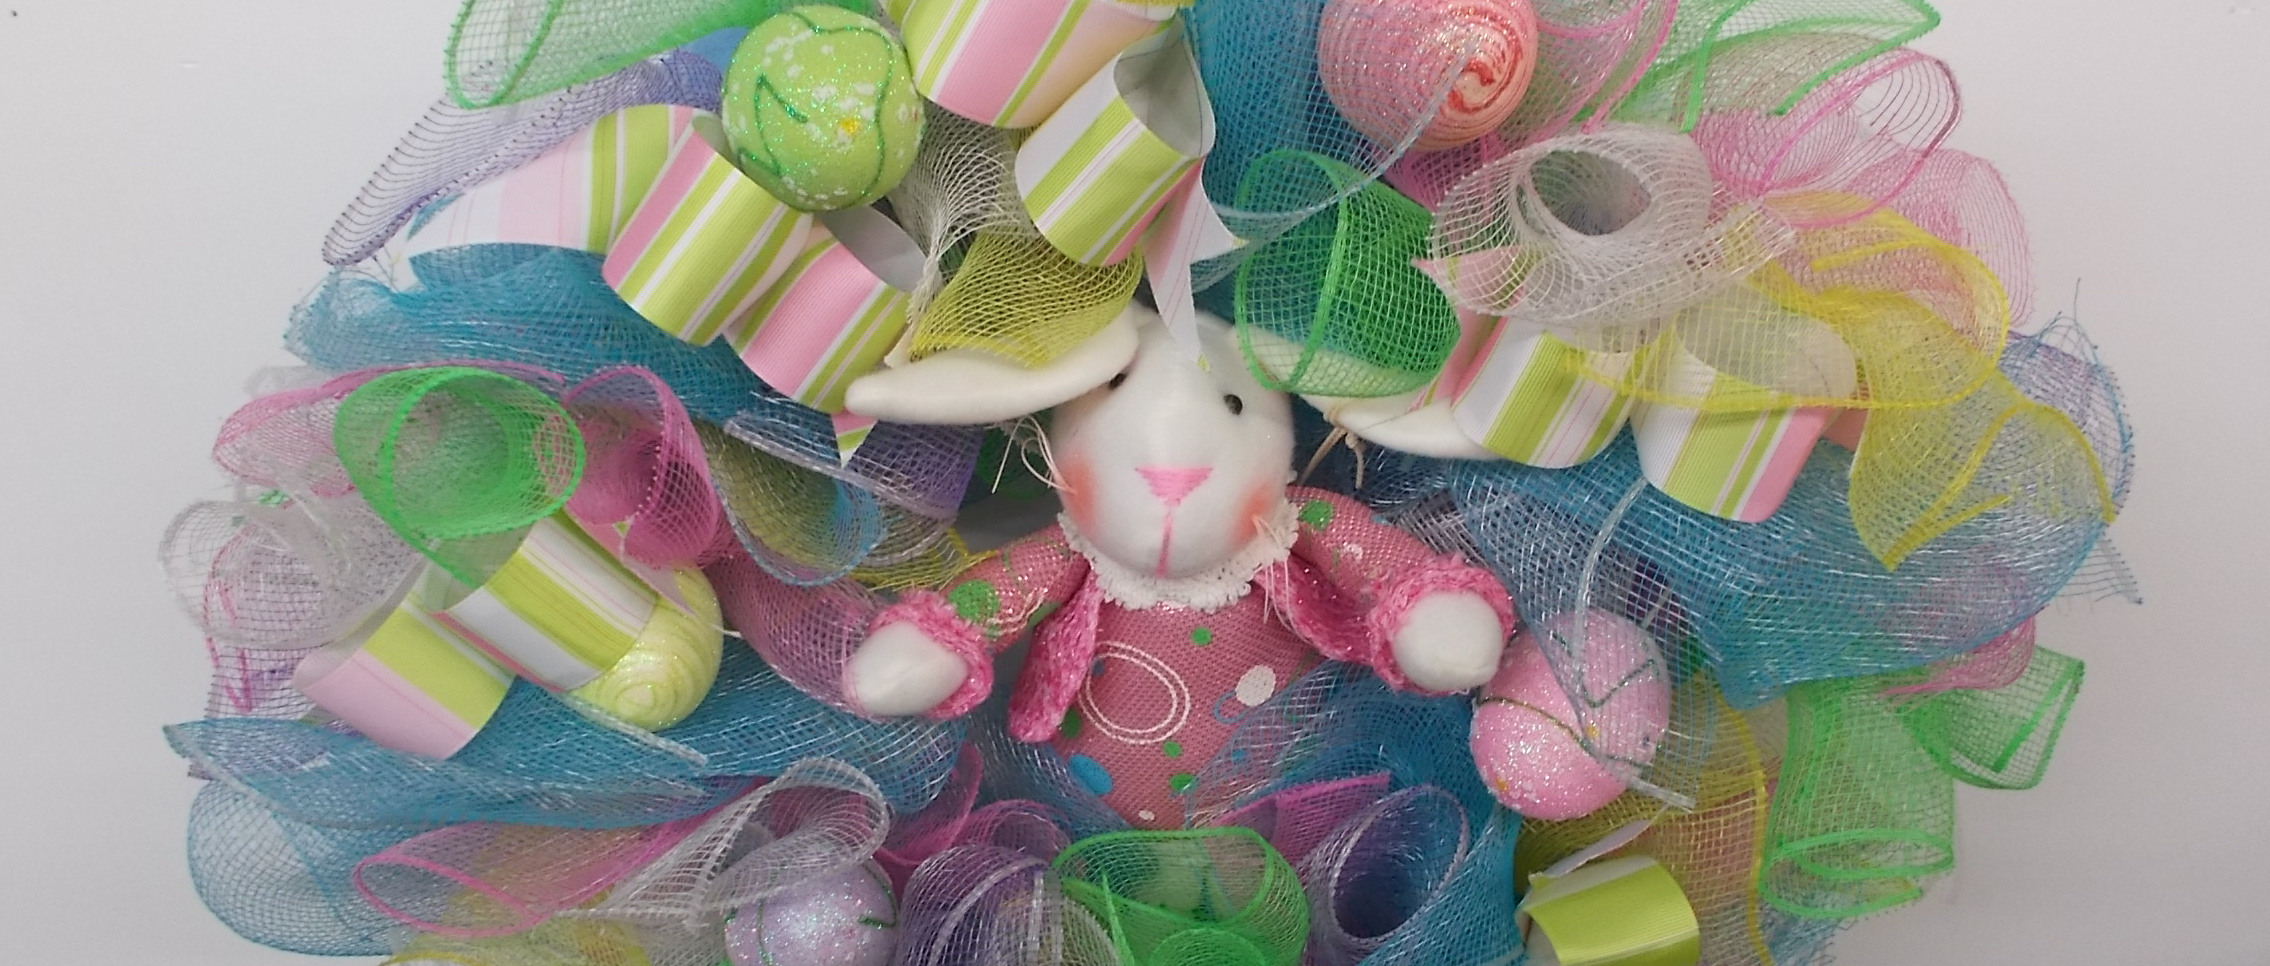 banner-easter-decoration-2646-treasures-under-sugar-loaf-winona-minnesota-antiques-collectibles-crafts